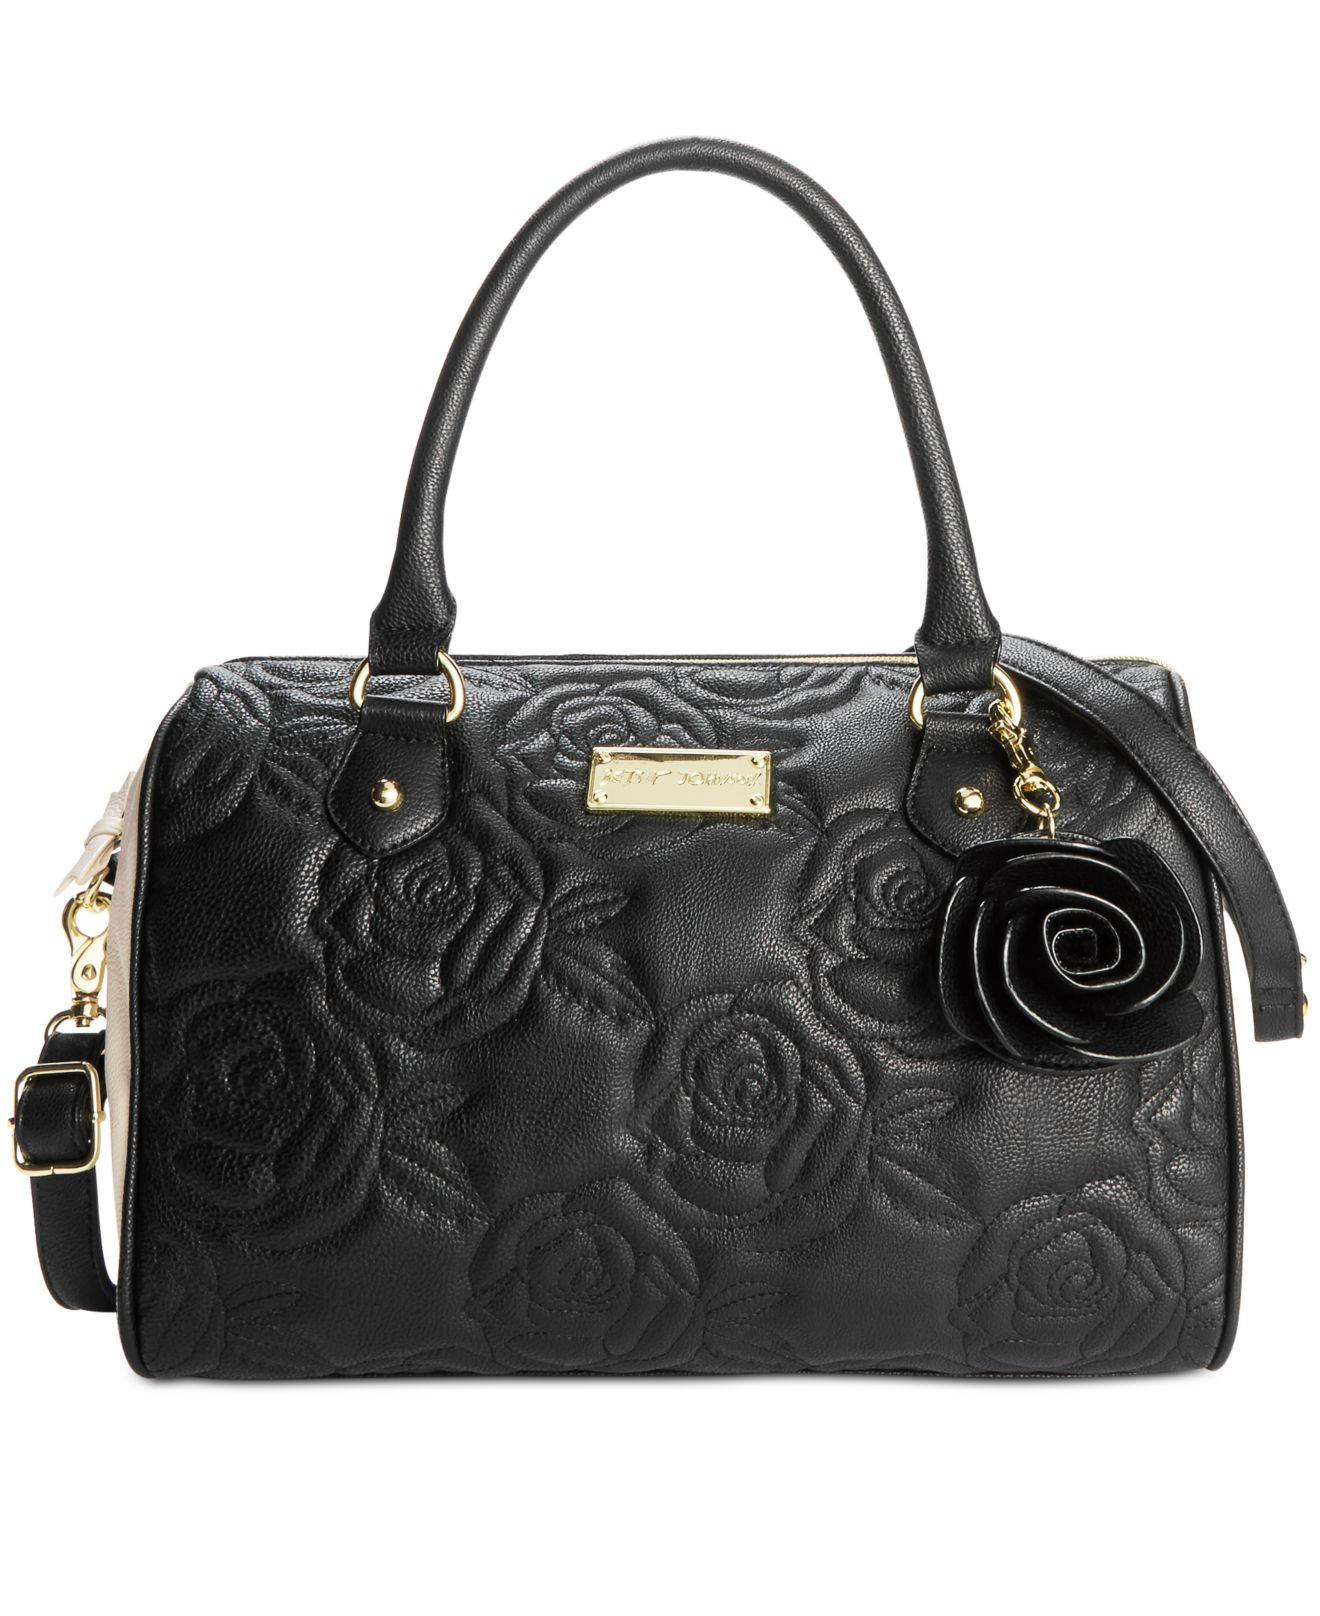 betsey johnson quilted satchel in black black